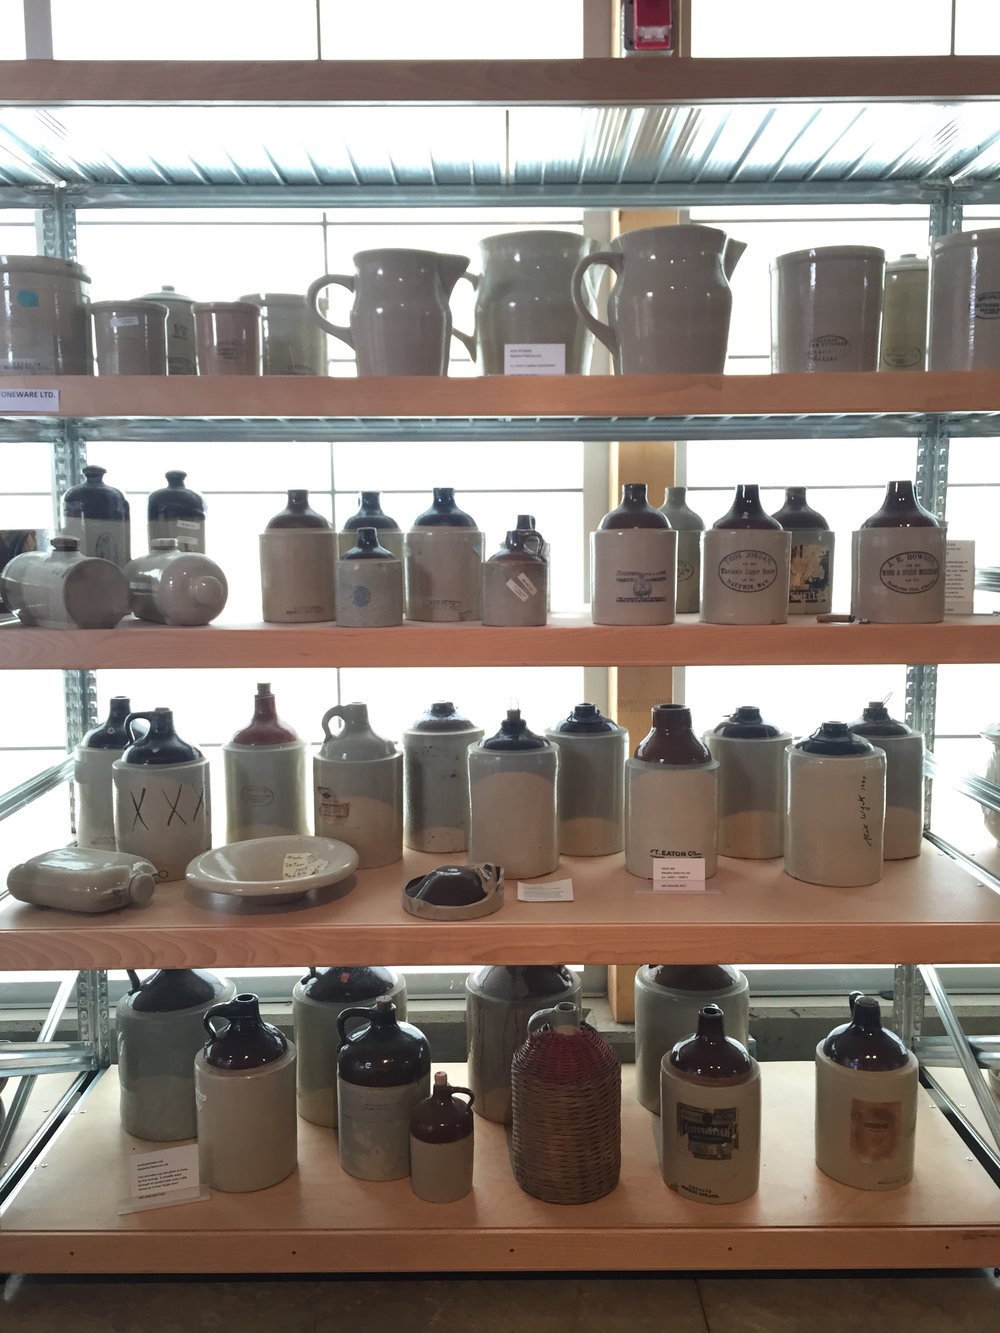 Vintage Medalta pitchers and bottles at the Museum in Medicine Hat.